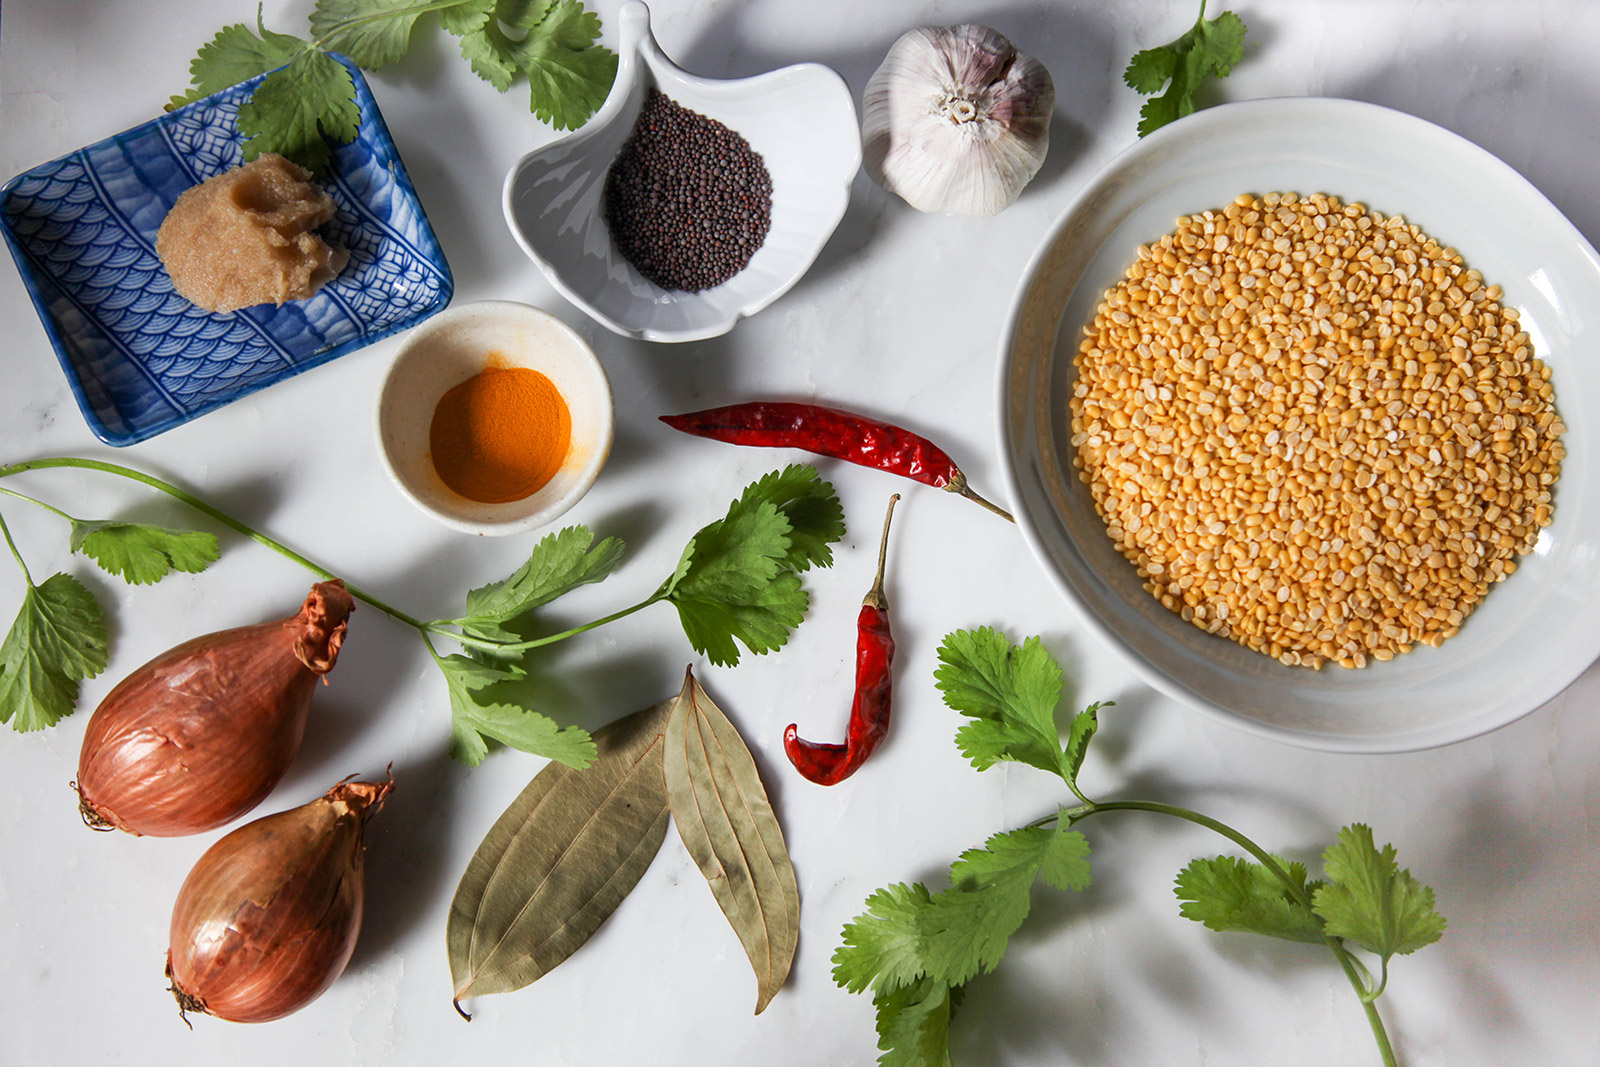 Ingredients for Golden Yellow Dal (Lentil Soup) with Turmeric, Garlic, Cilantro